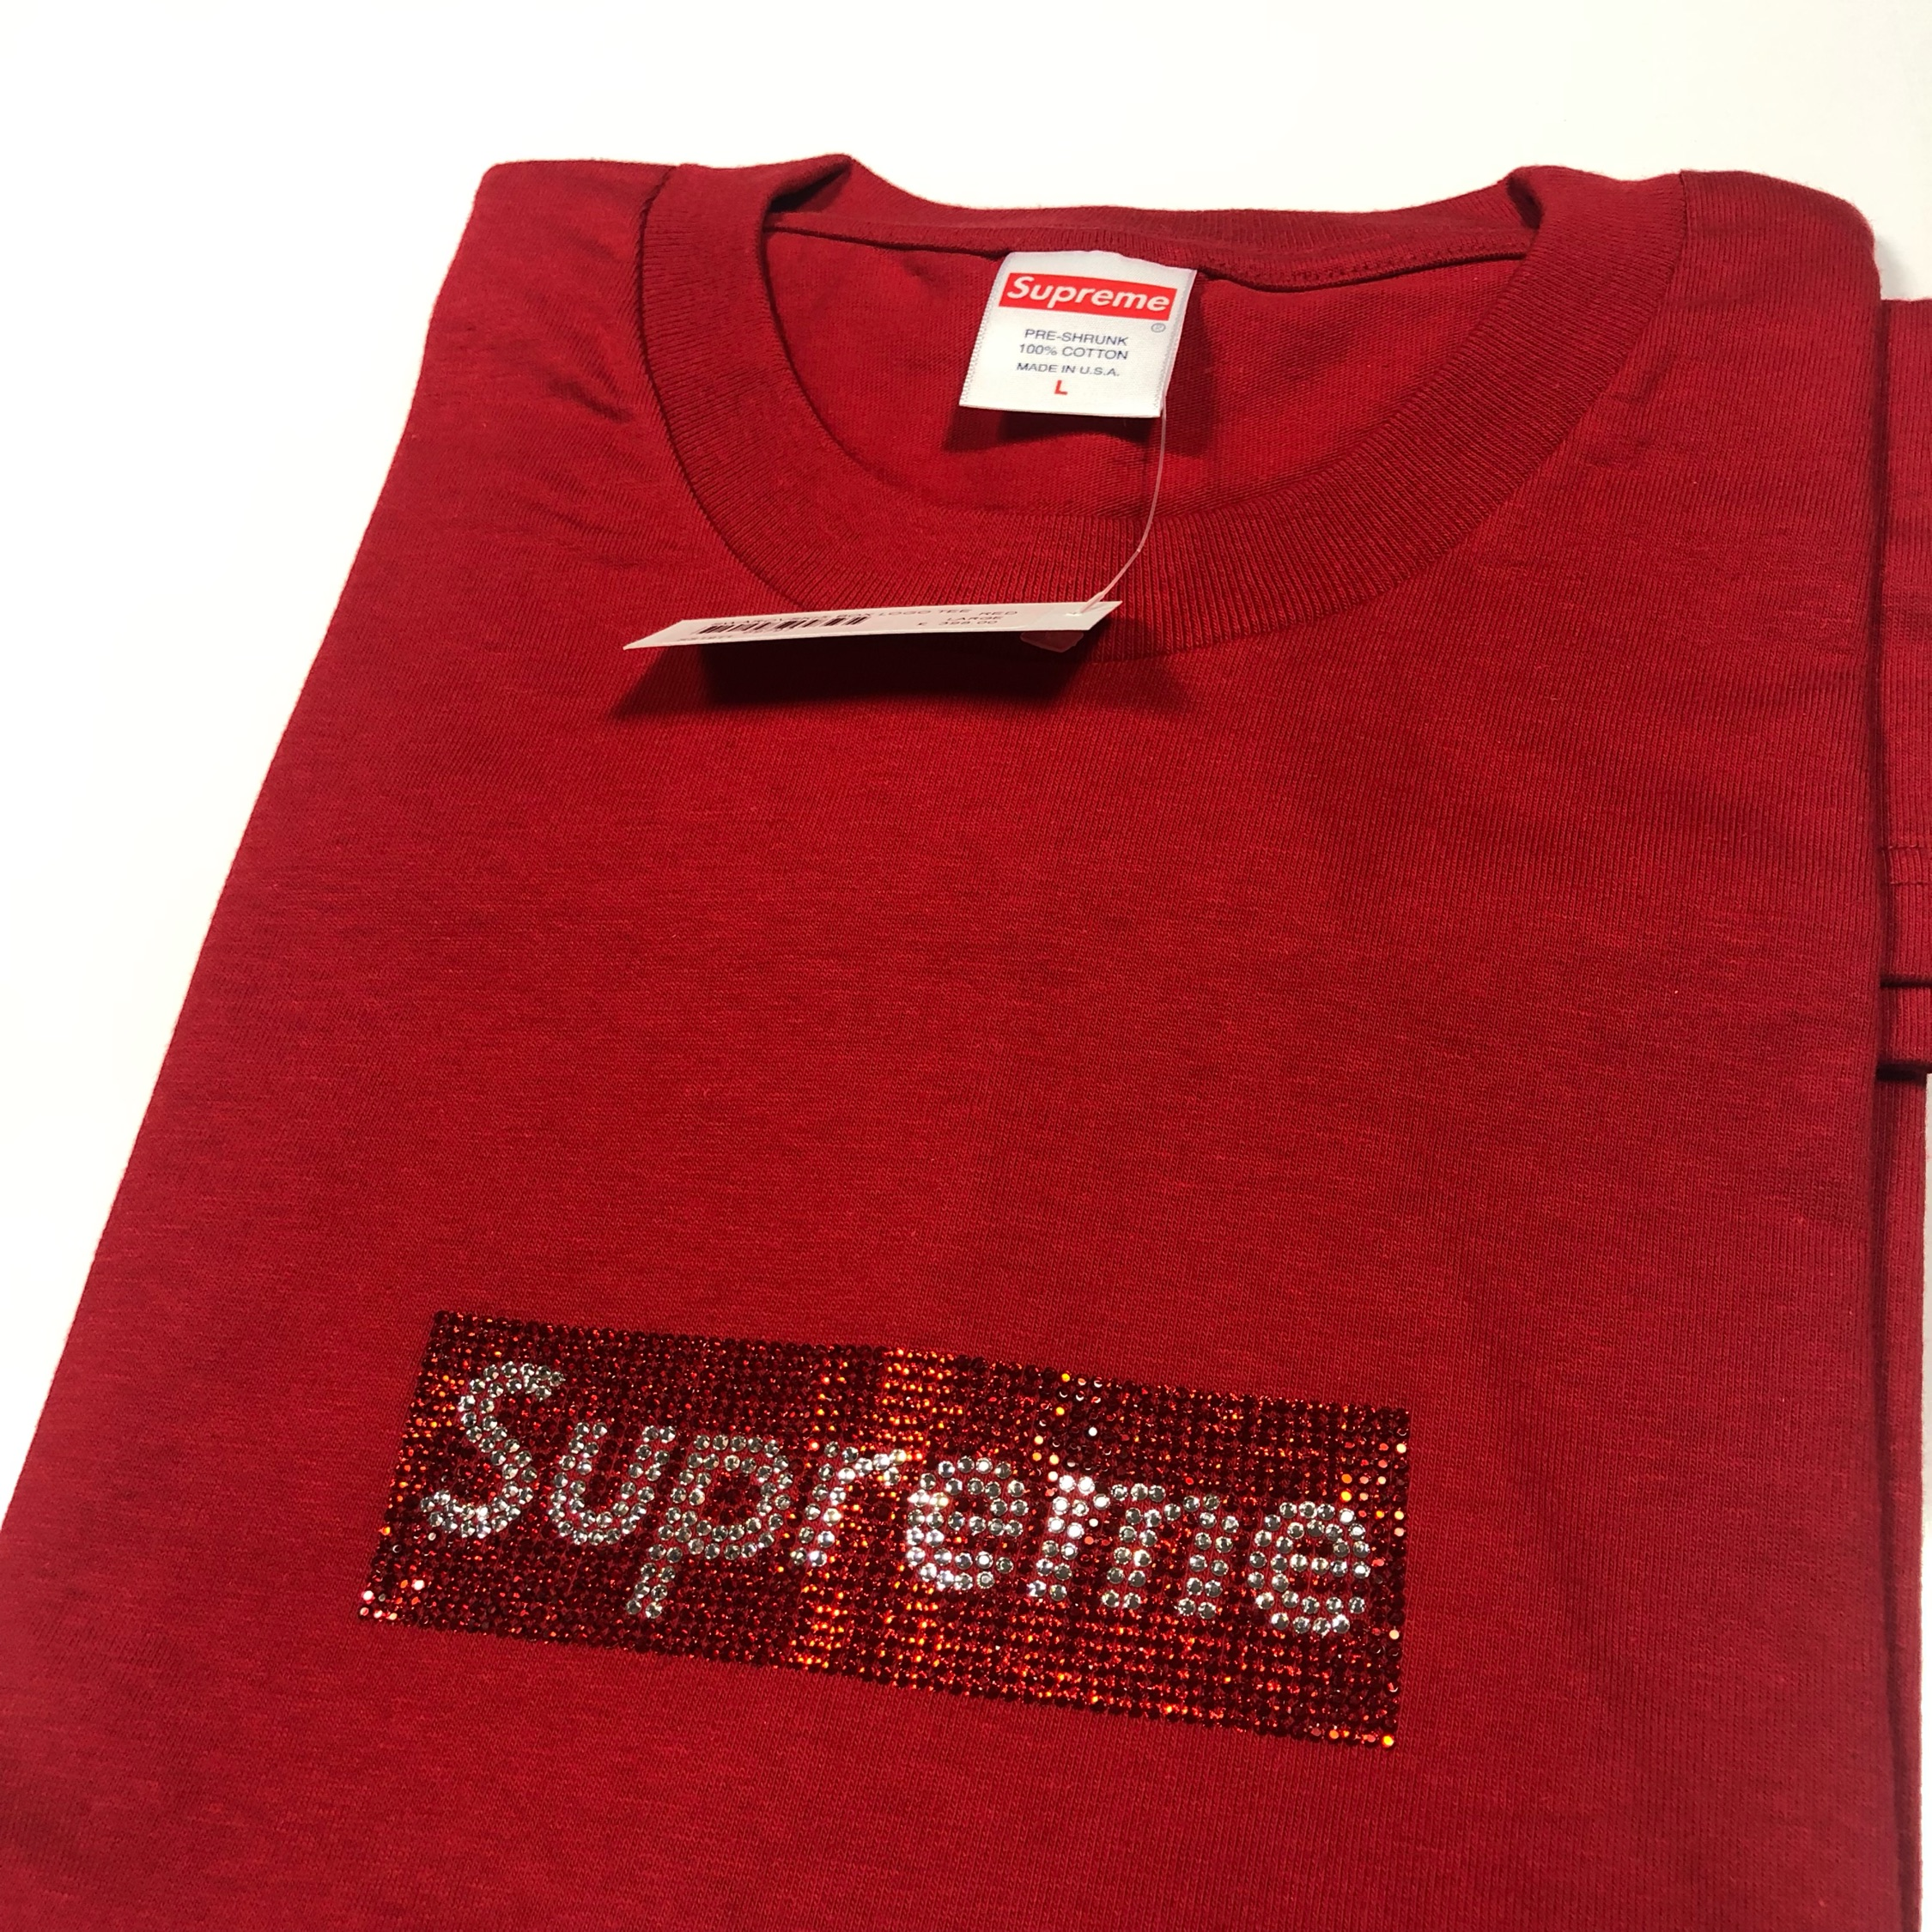 Supreme Swarovski Box Logo T Shirt Red Large New